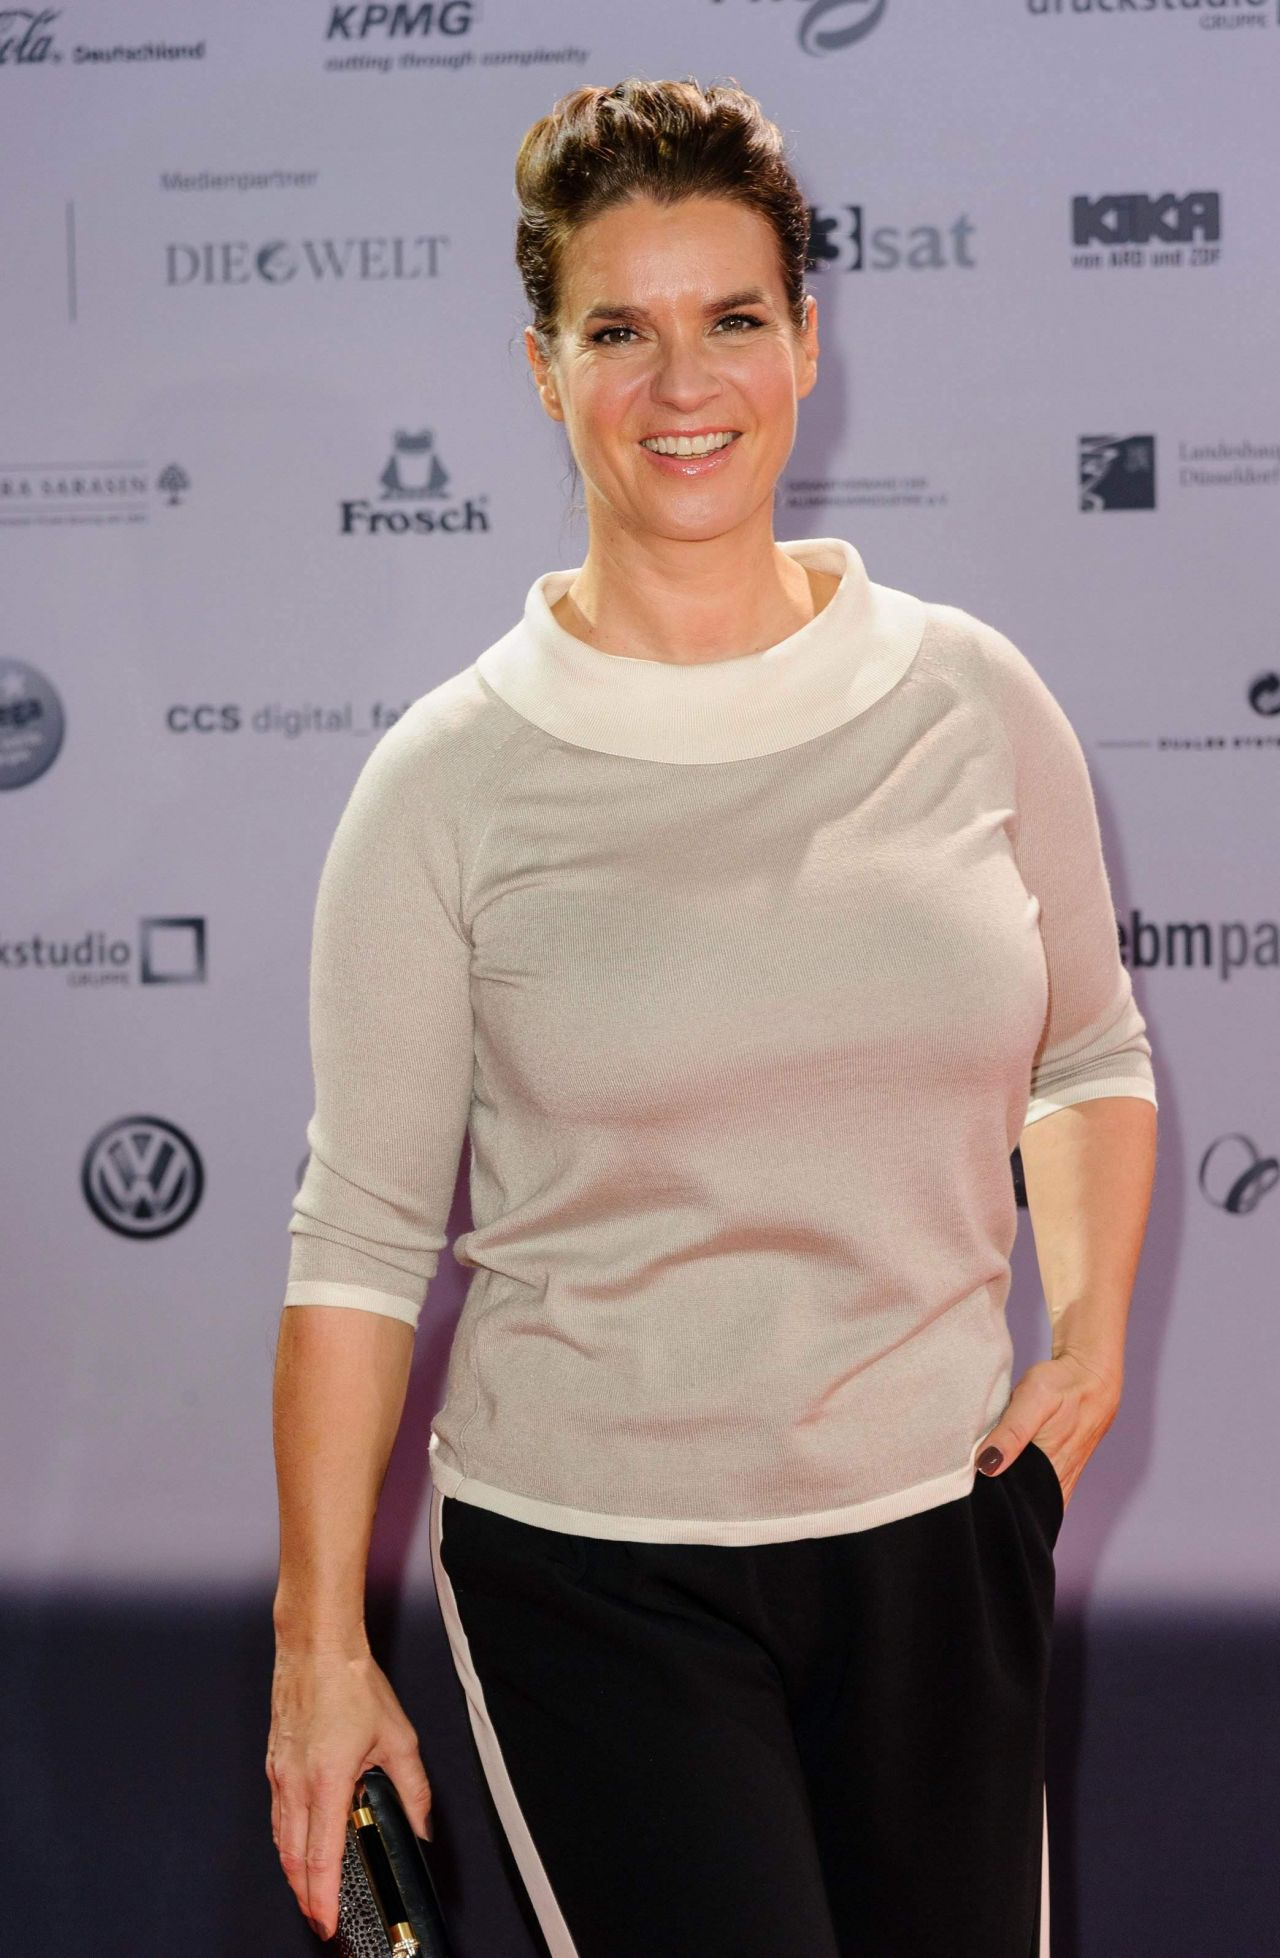 Katarina Witt - 2014 German Sustainability Award in Dusseldorf